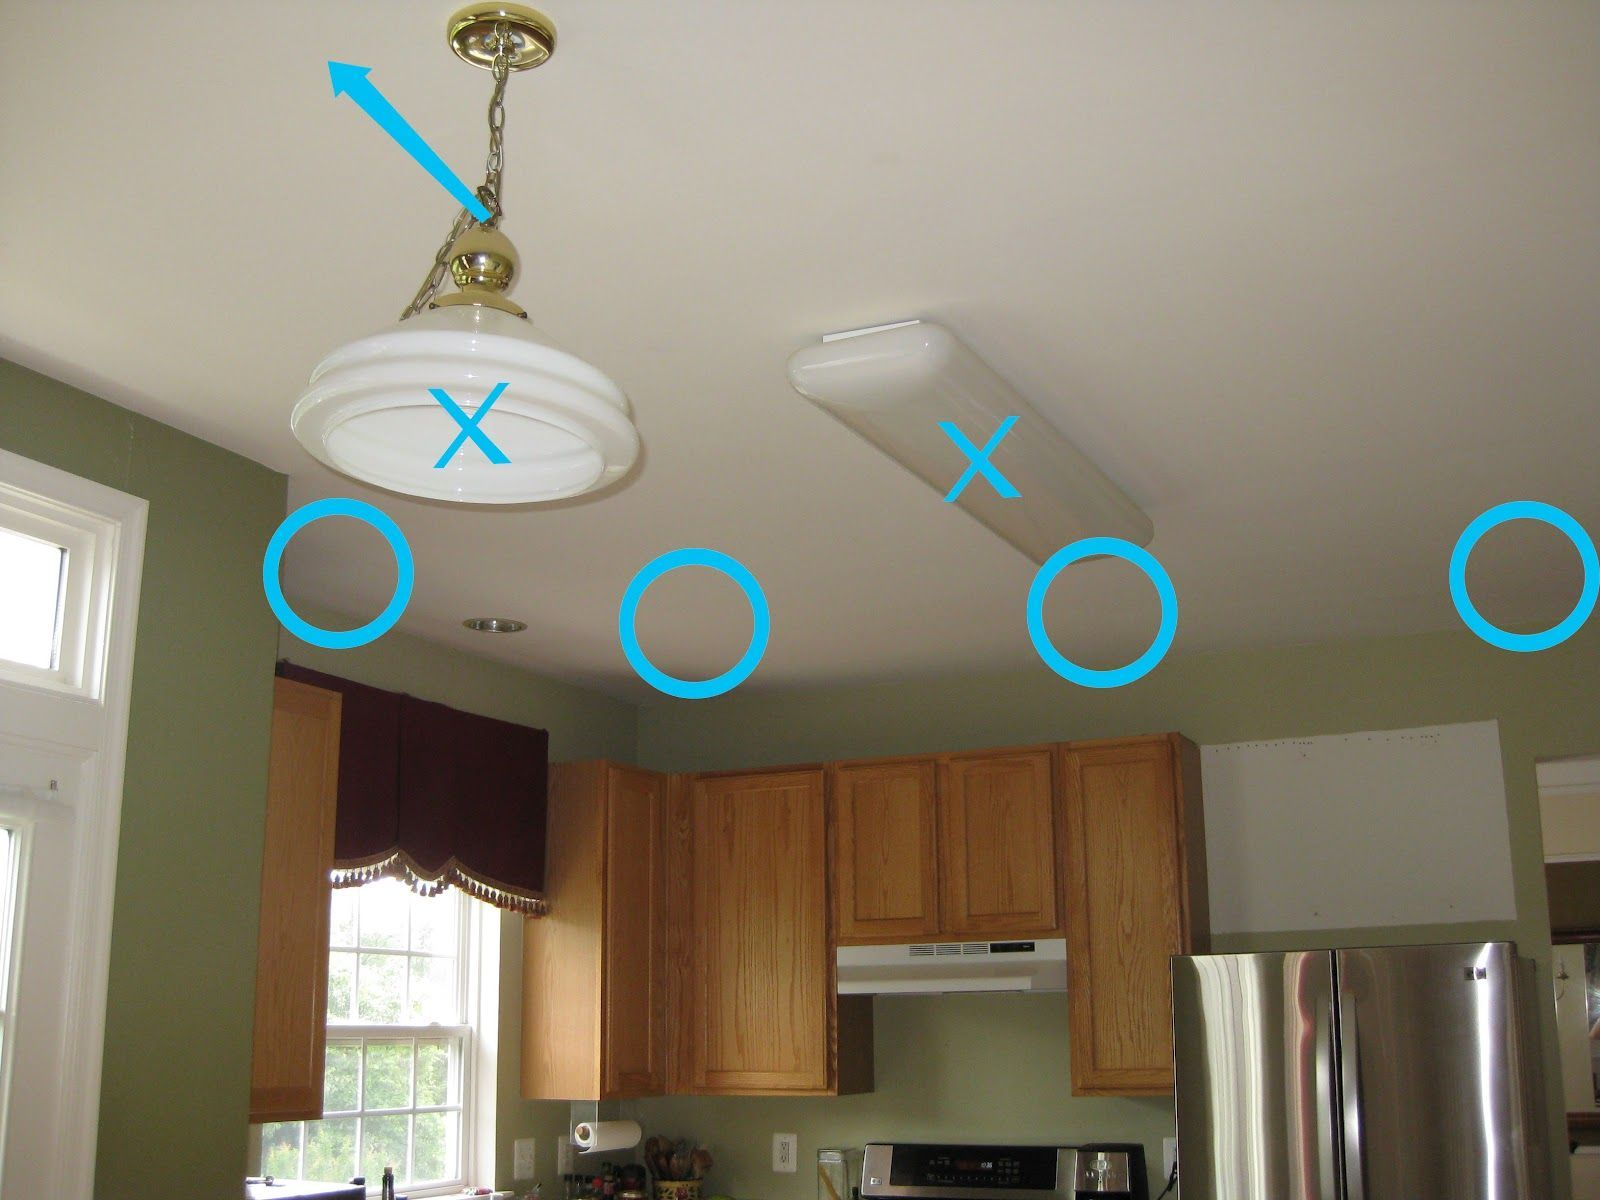 How To Install Can Lights Lots Of Links To Articles From Pros Kitchen Lighting Installing Recessed Lighting Kitchen Recessed Lighting Can Lights In Kitchen